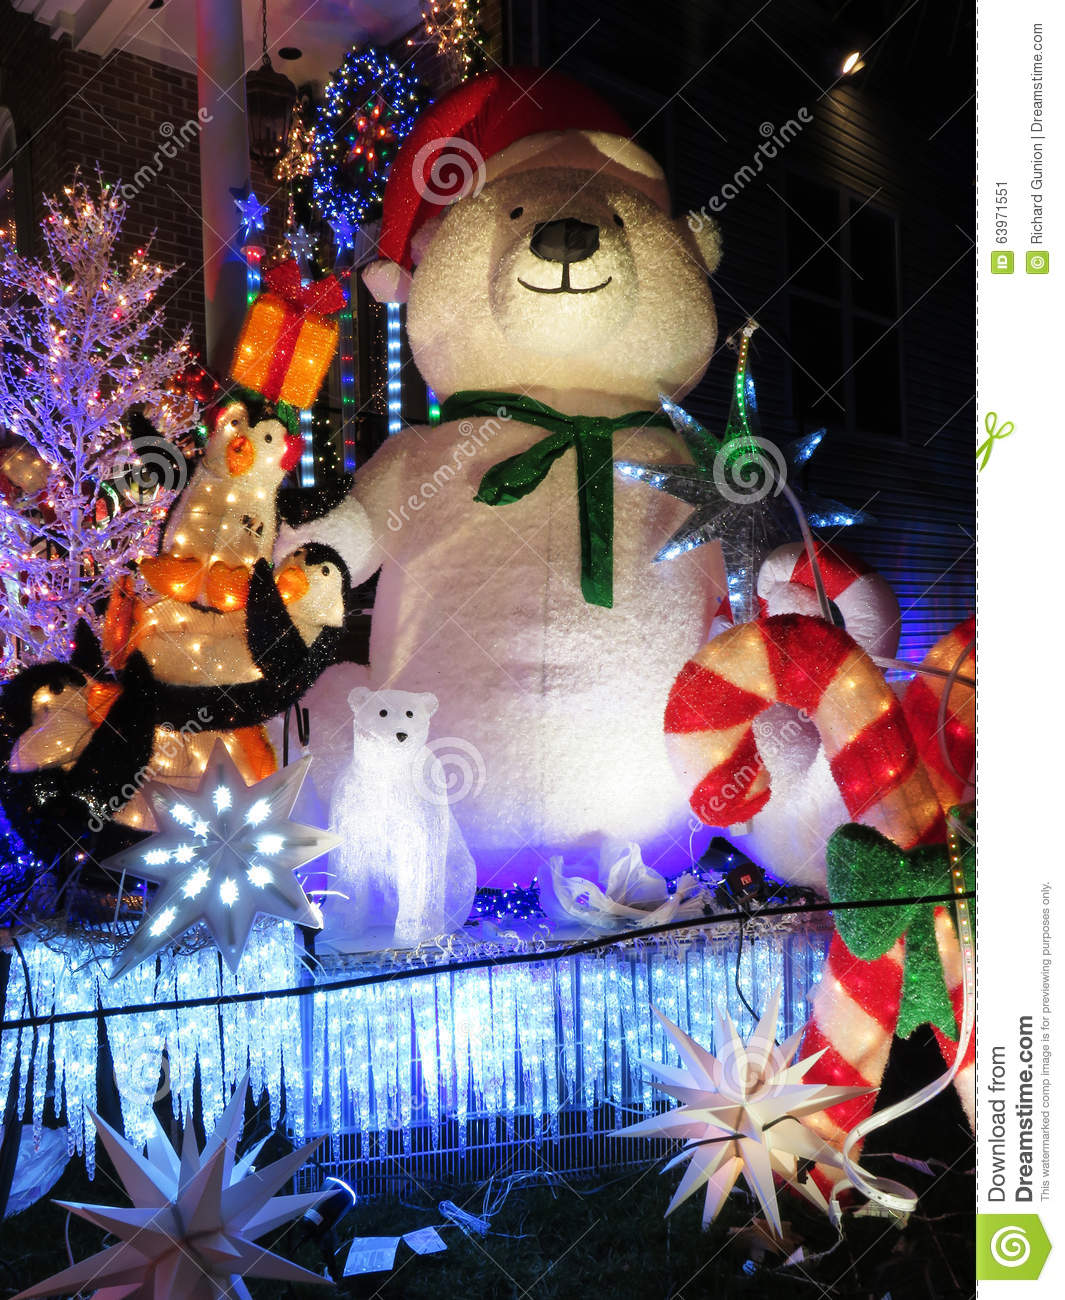 winnie the pooh christmas character